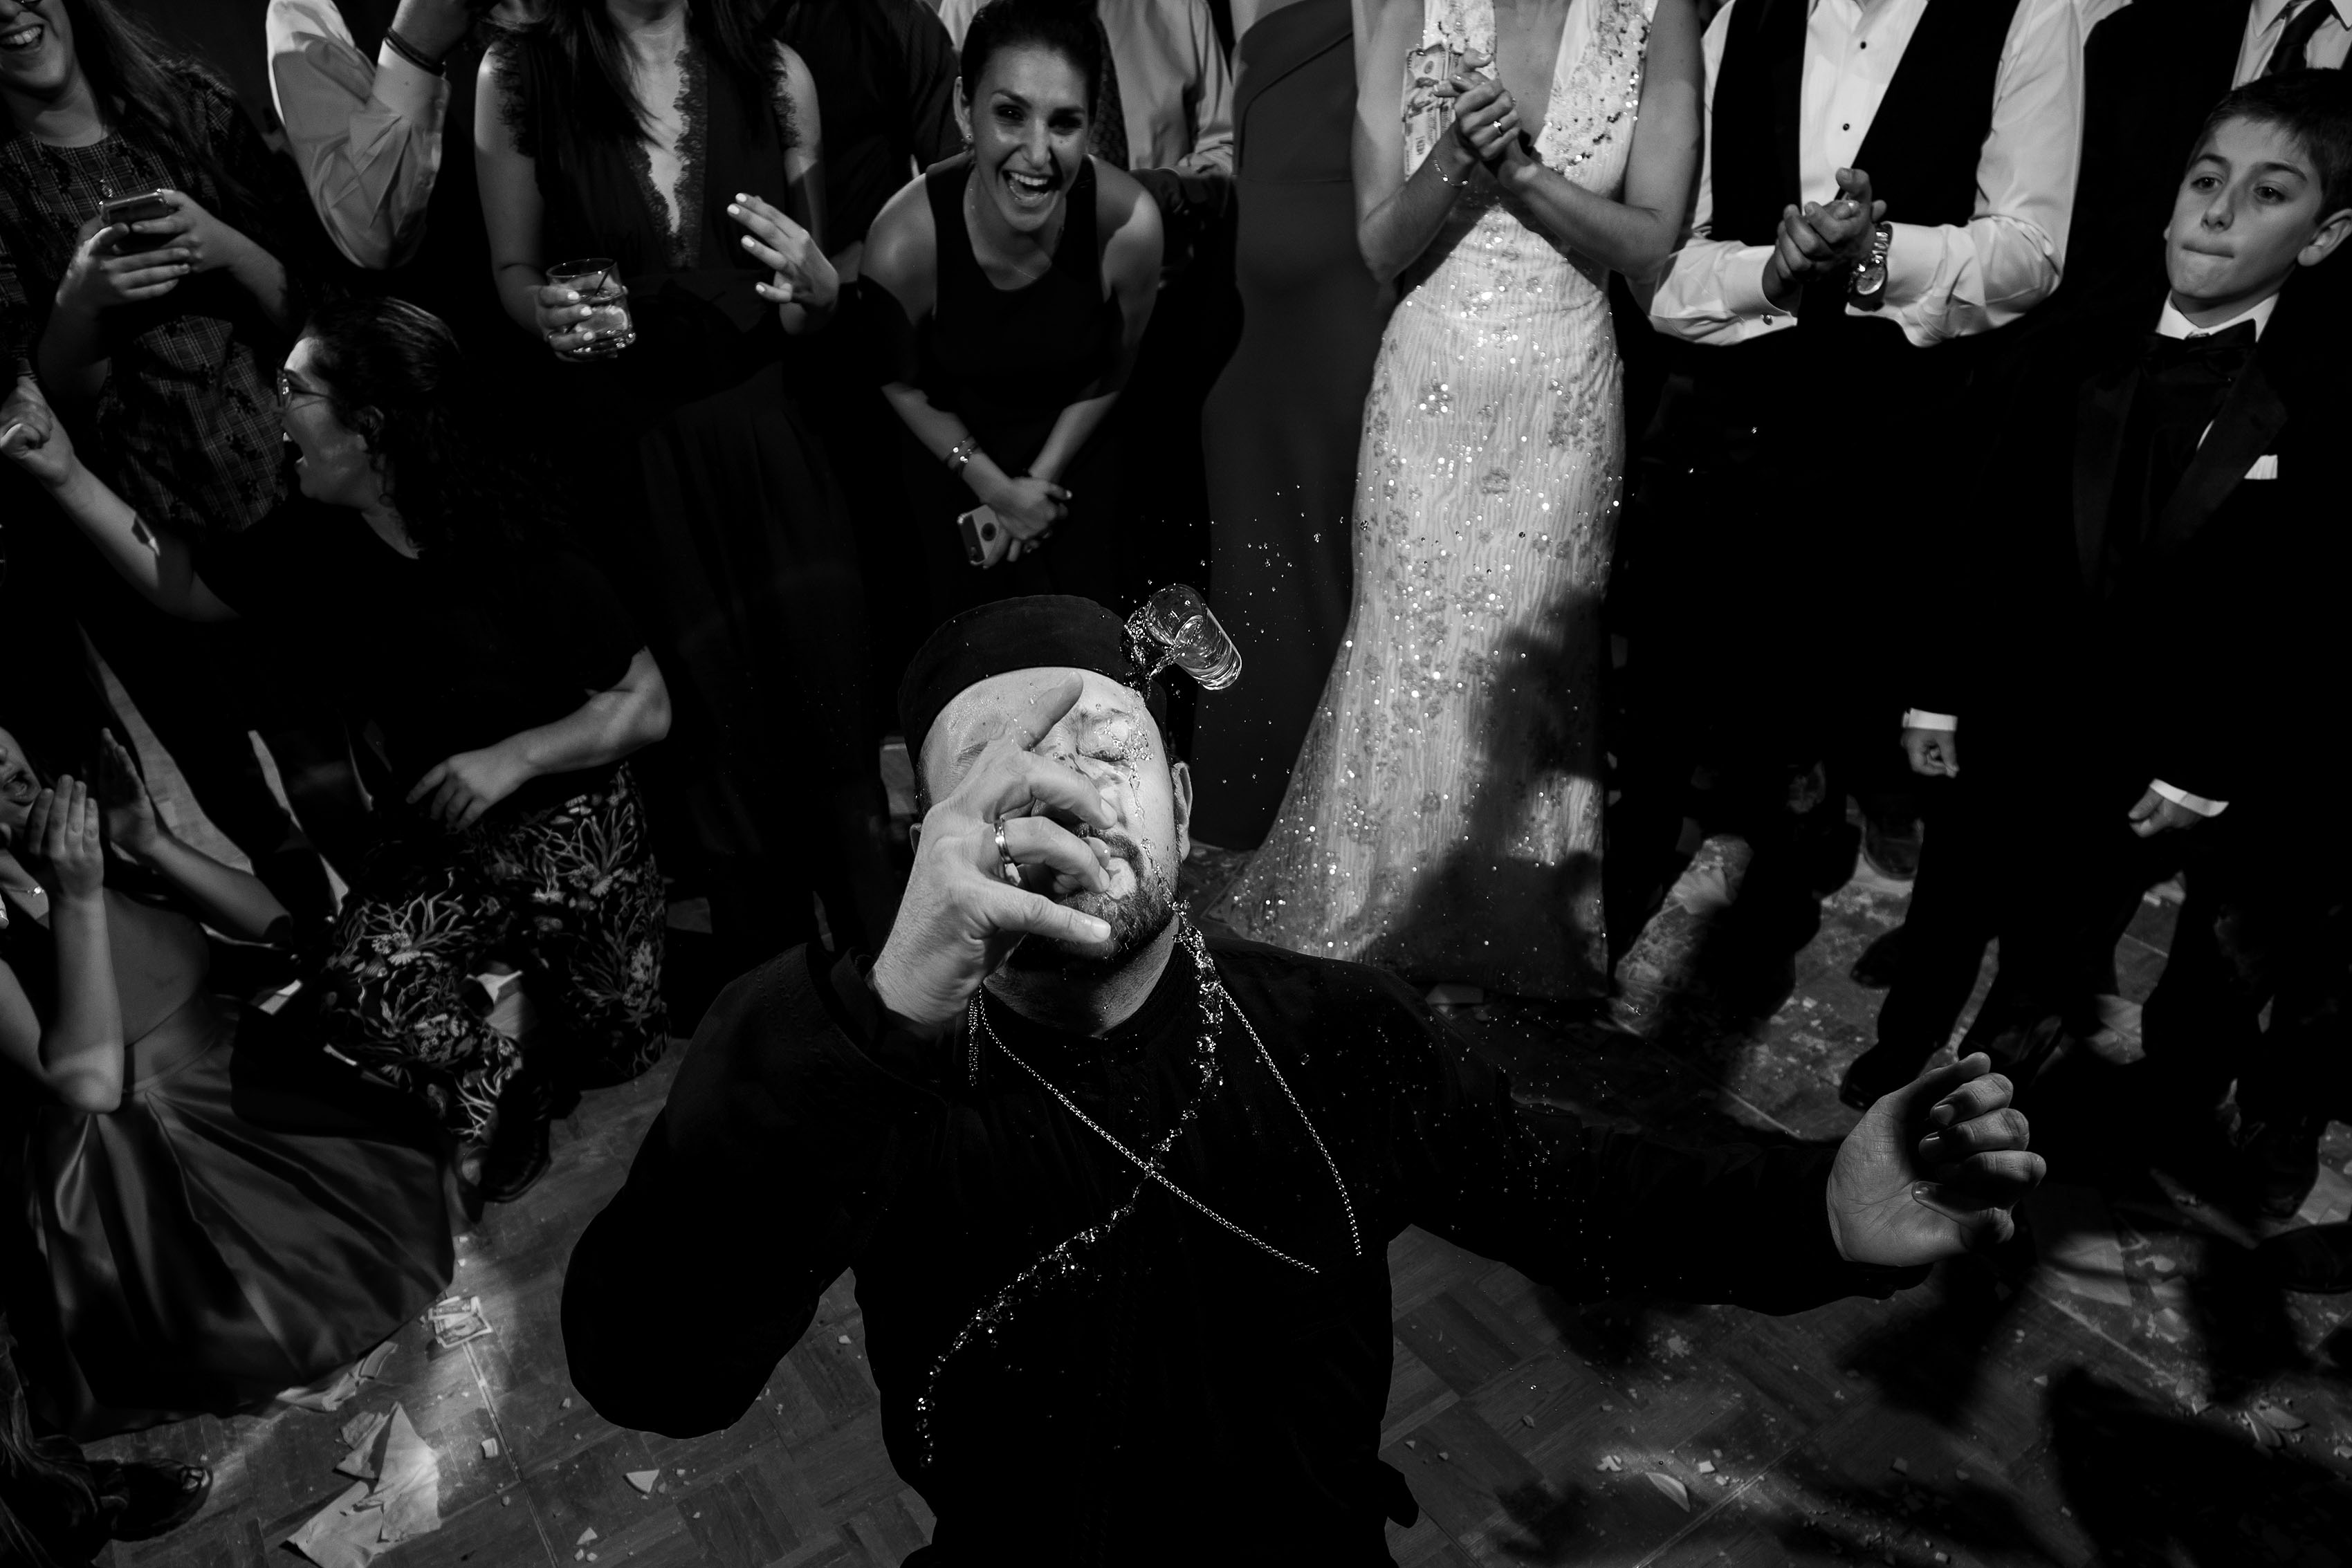 The priest spills a shot of Ouzo on his face while dancing at a Greek wedding reception at the Sheraton Albuquerque uptown